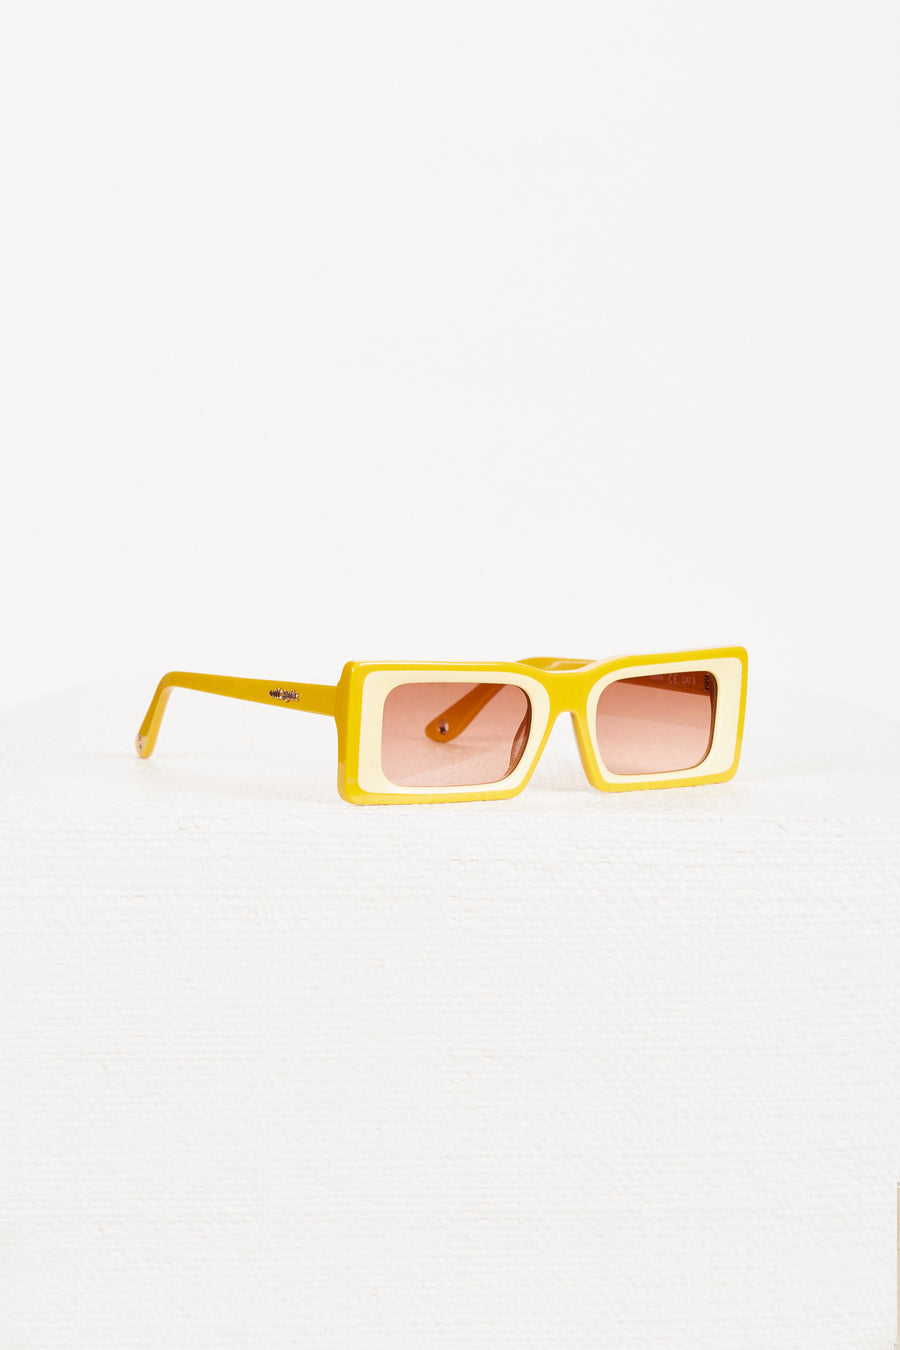 HERA SUNGLASSES - CANARY